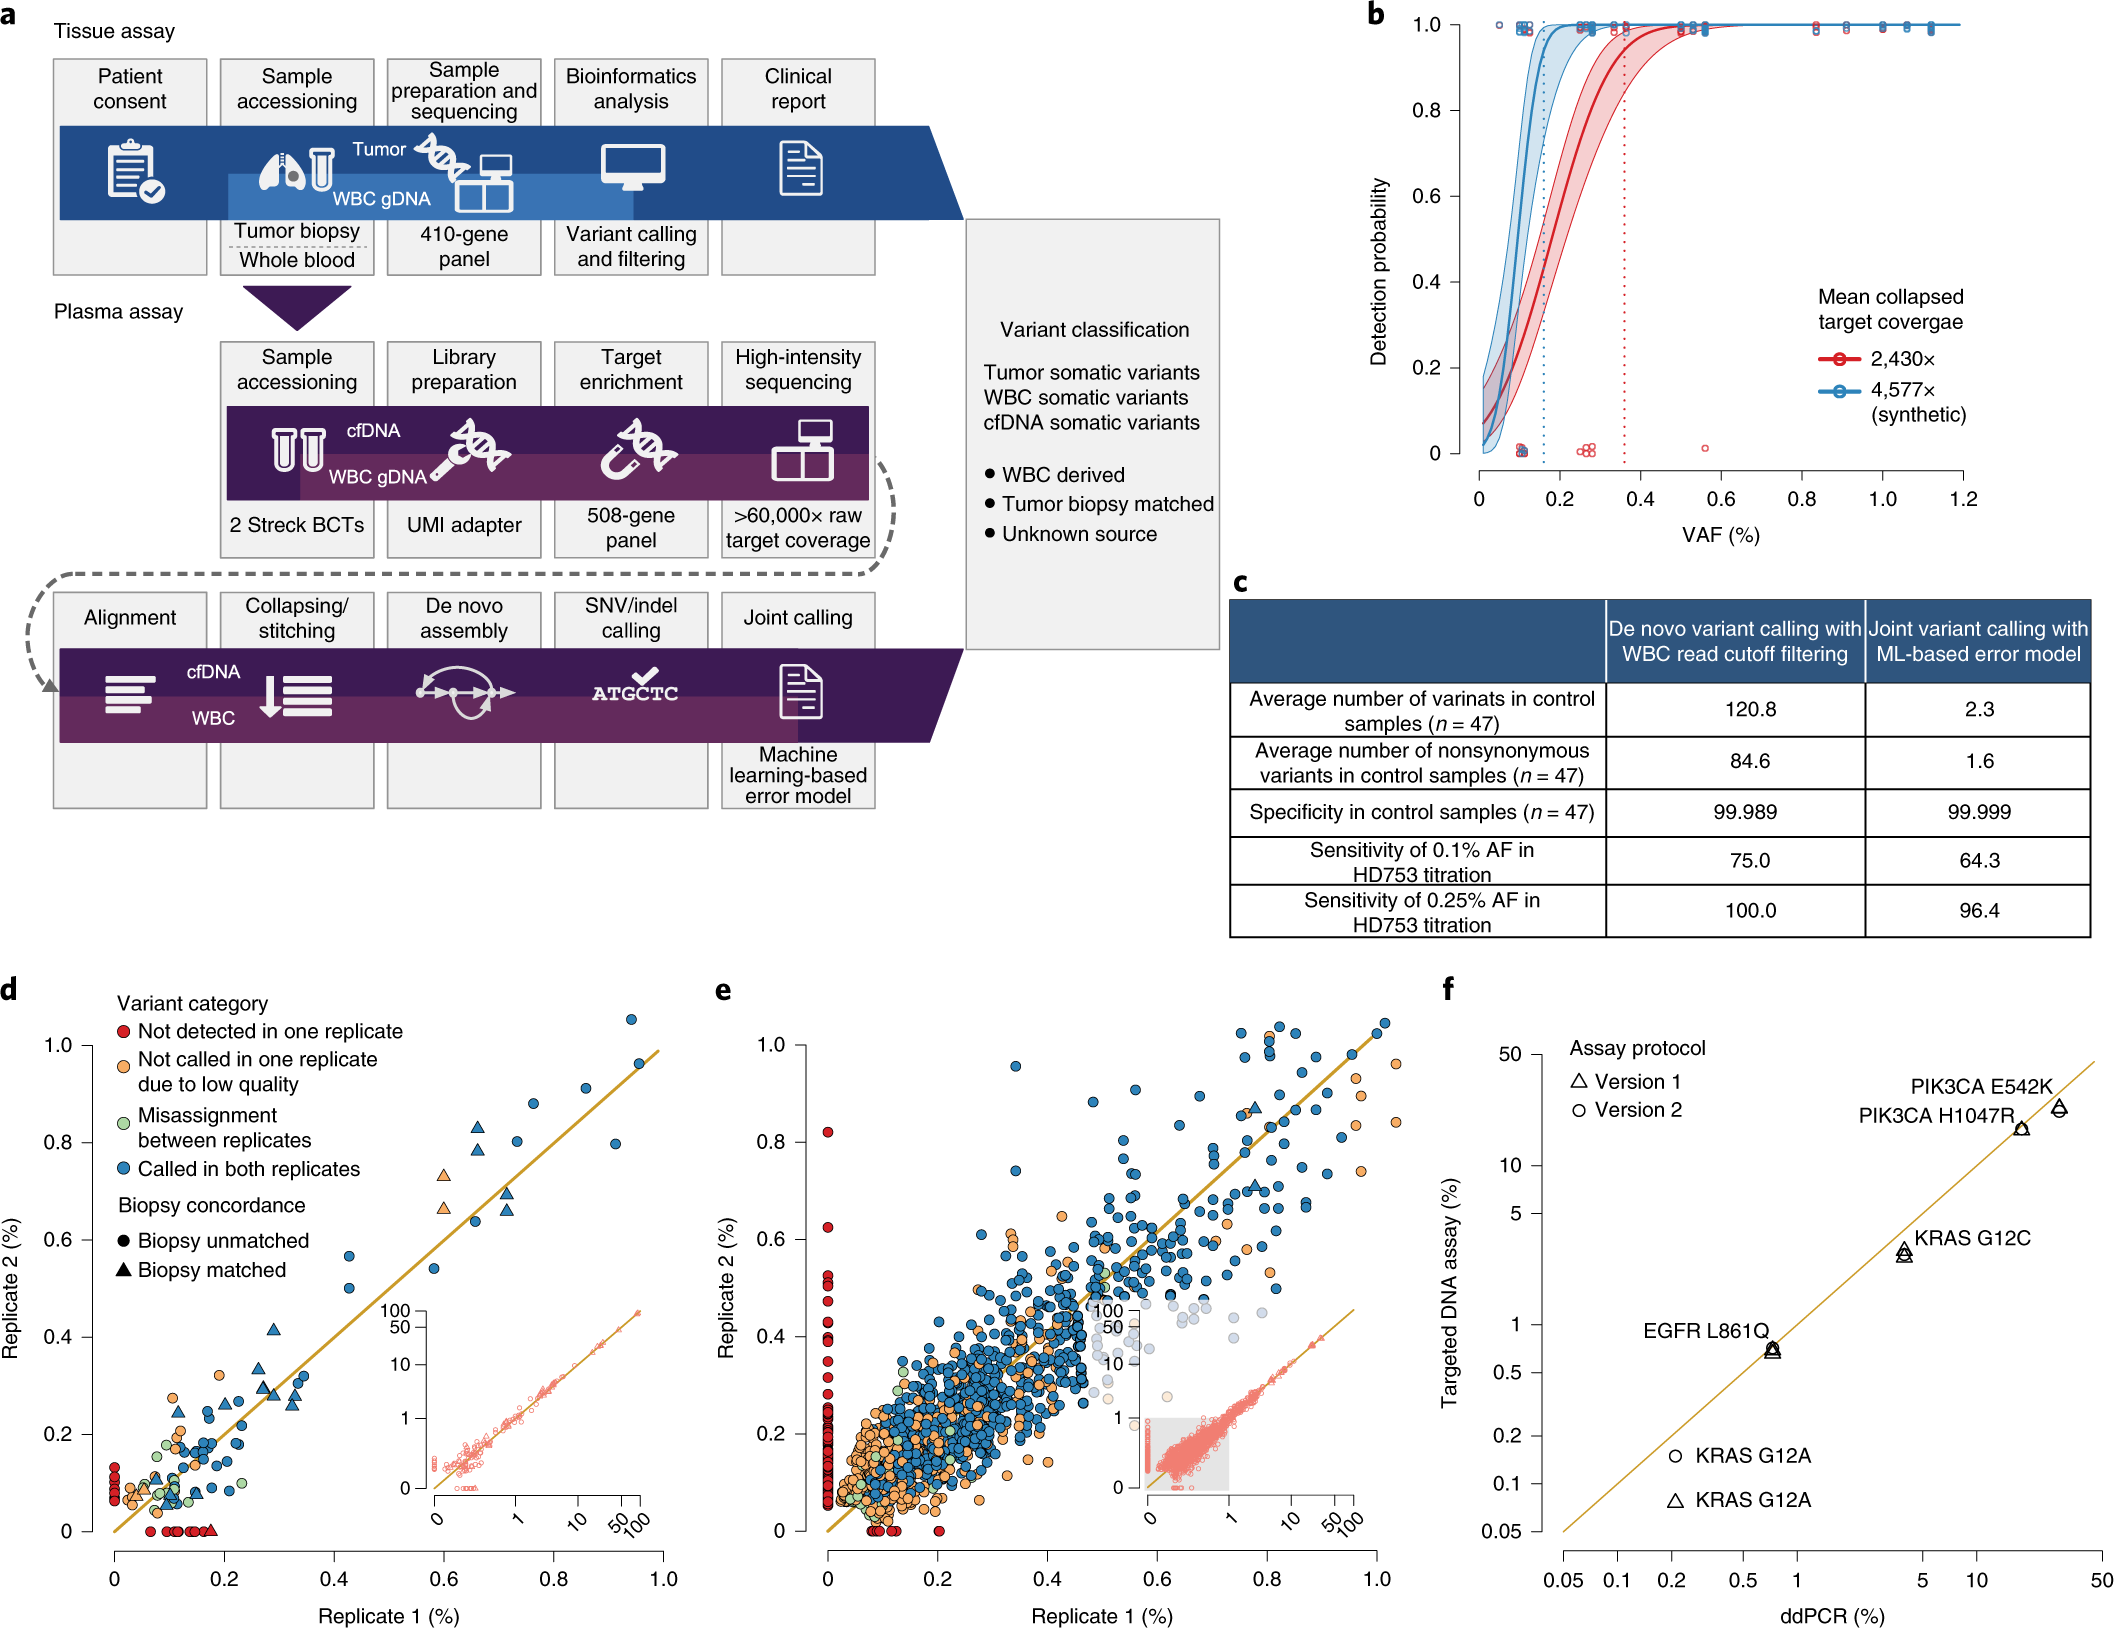 High-intensity sequencing reveals the sources of plasma